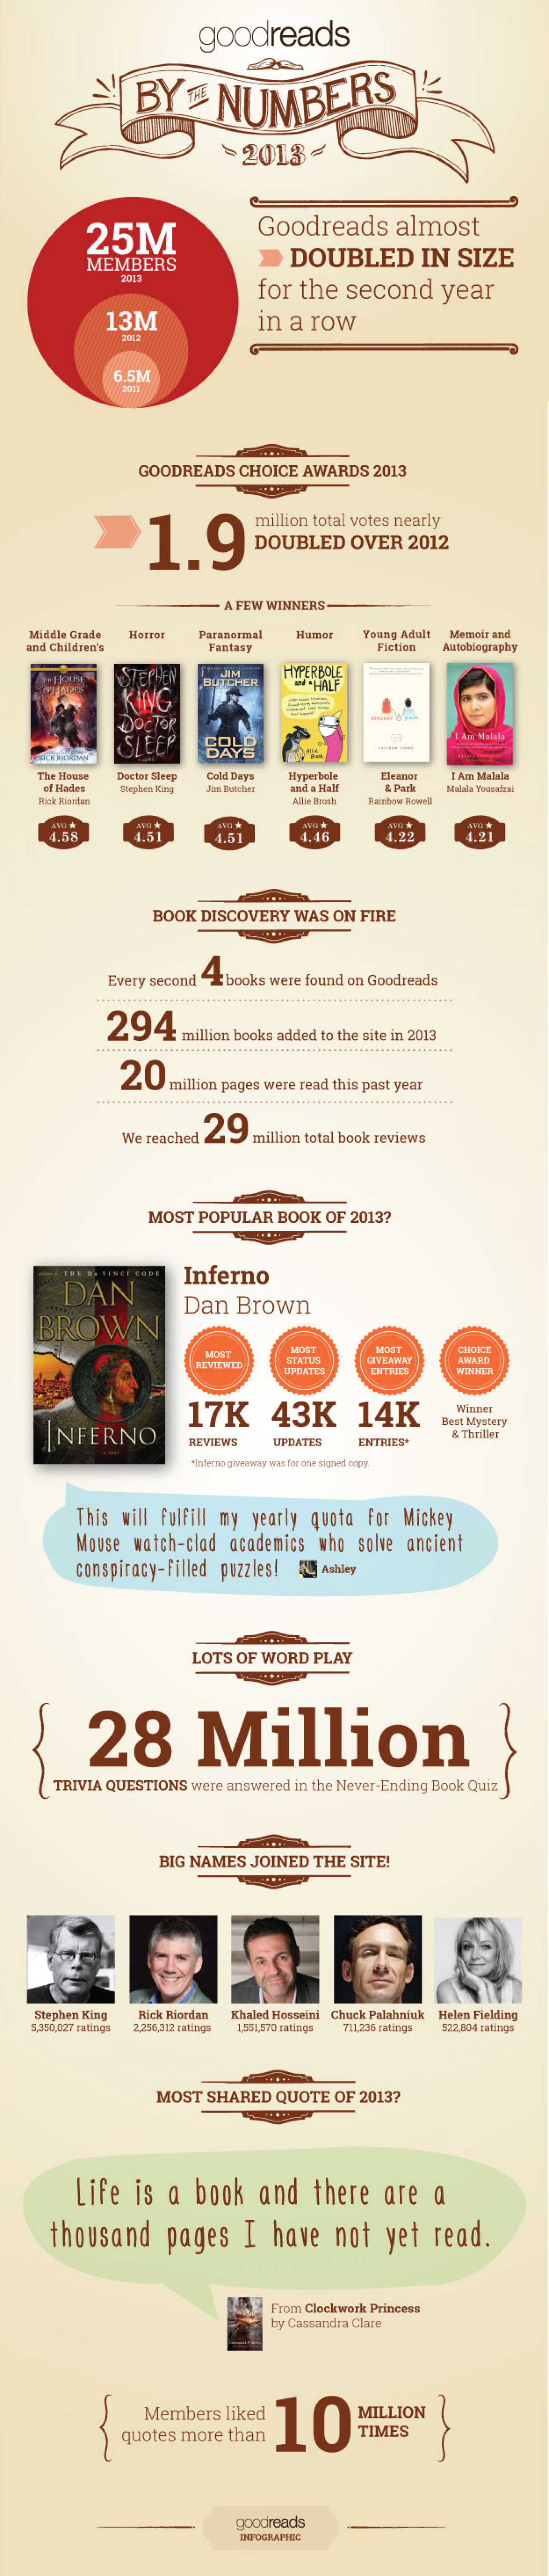 Goodreads by the Numbers 2013 Infographic